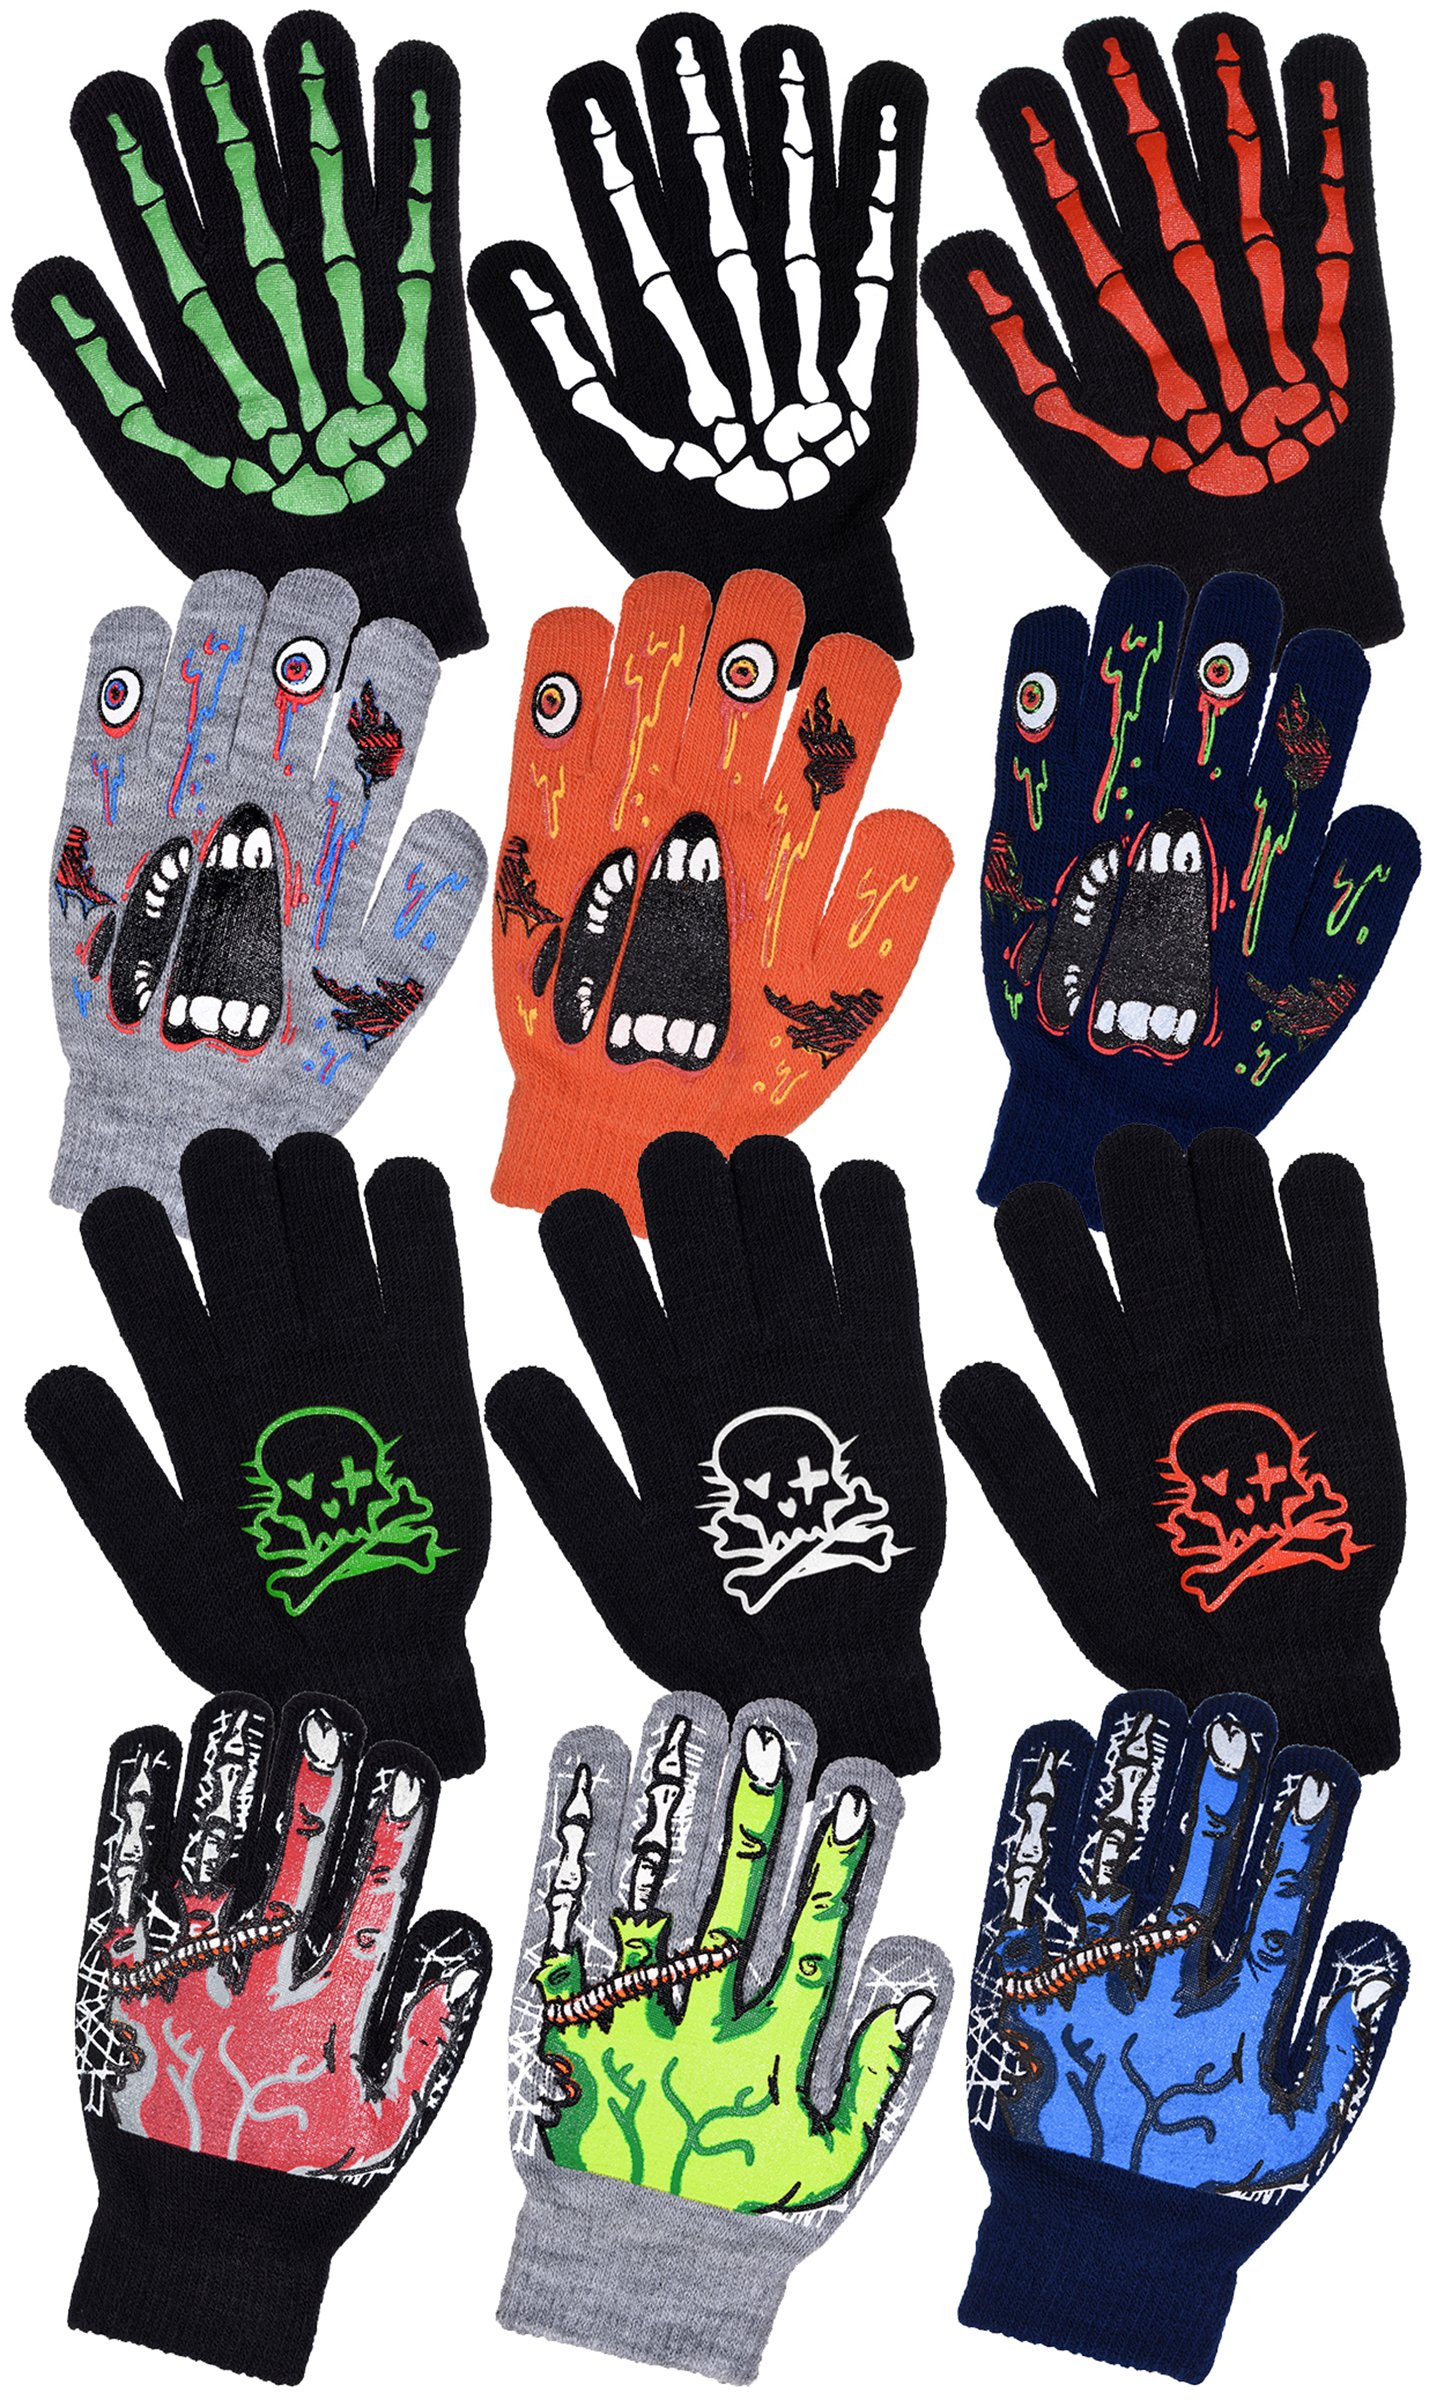 Boys Scary Skeleton & Monster Knit Glove Sets in 6 Creepy Styles and Colors (B2264 Skull/Crossbones White)